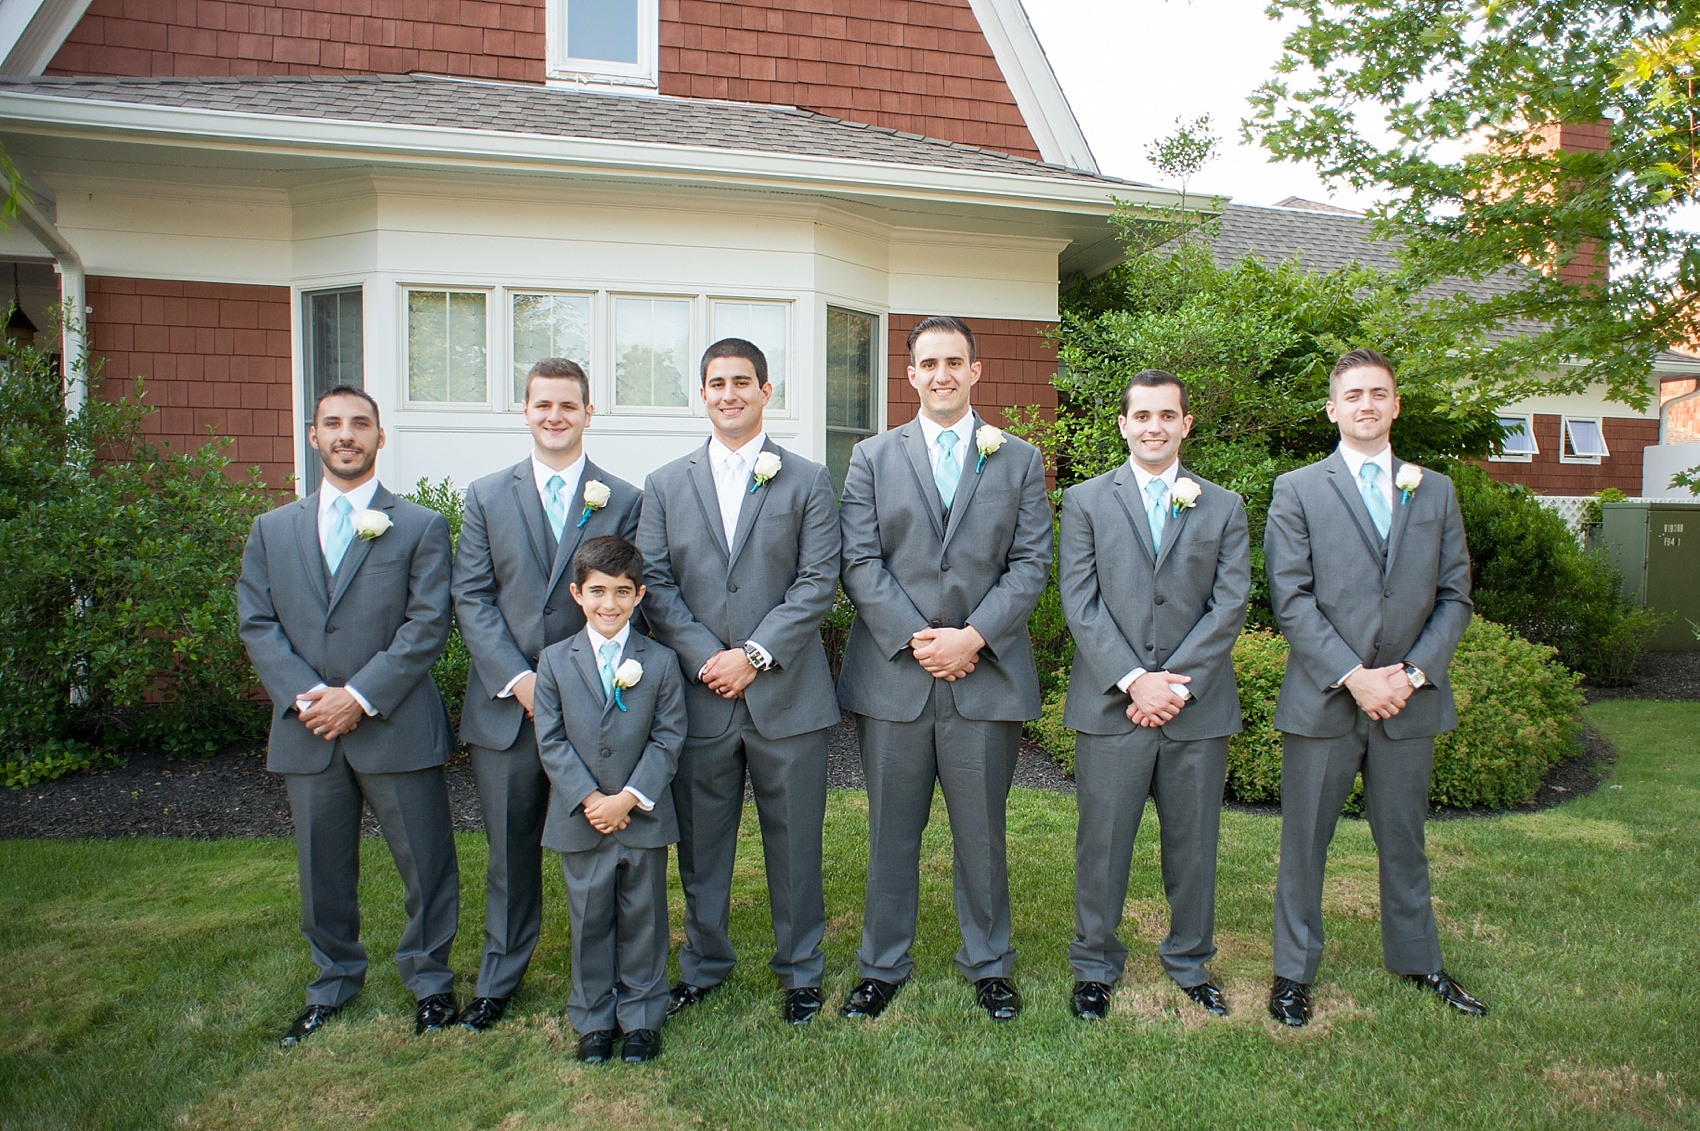 Groomsmen in grey suits for a Hollow Brook Golf Club wedding in New York. Photos by Mikkel Paige Photography.